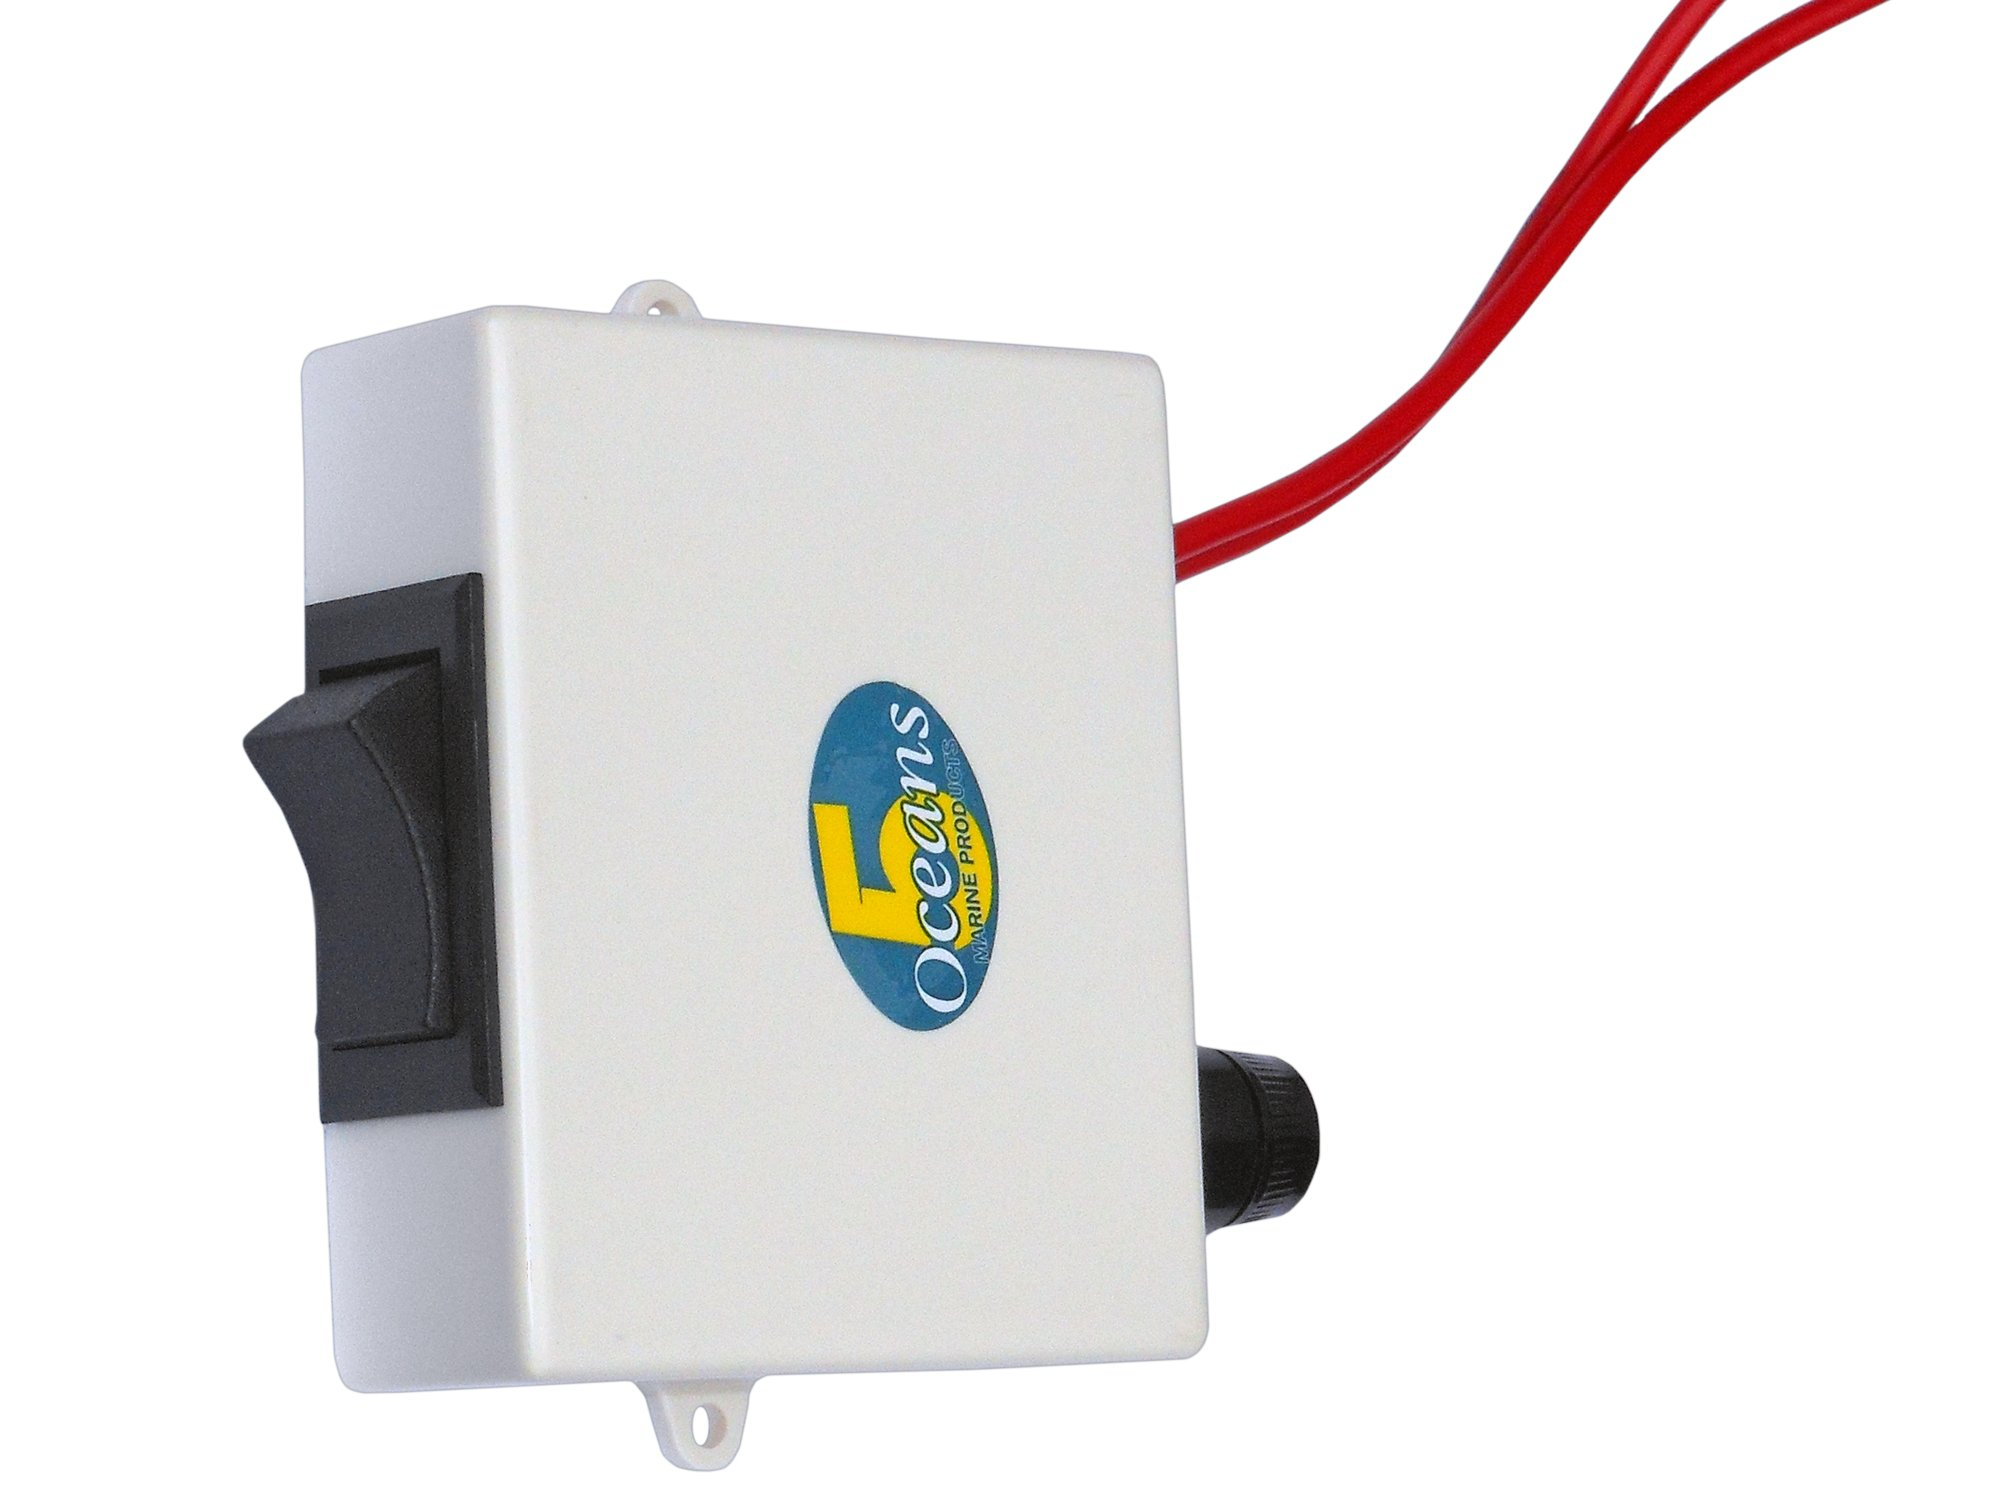 Five Oceans Electric Toilet Switch Box FO-729 by Five Oceans